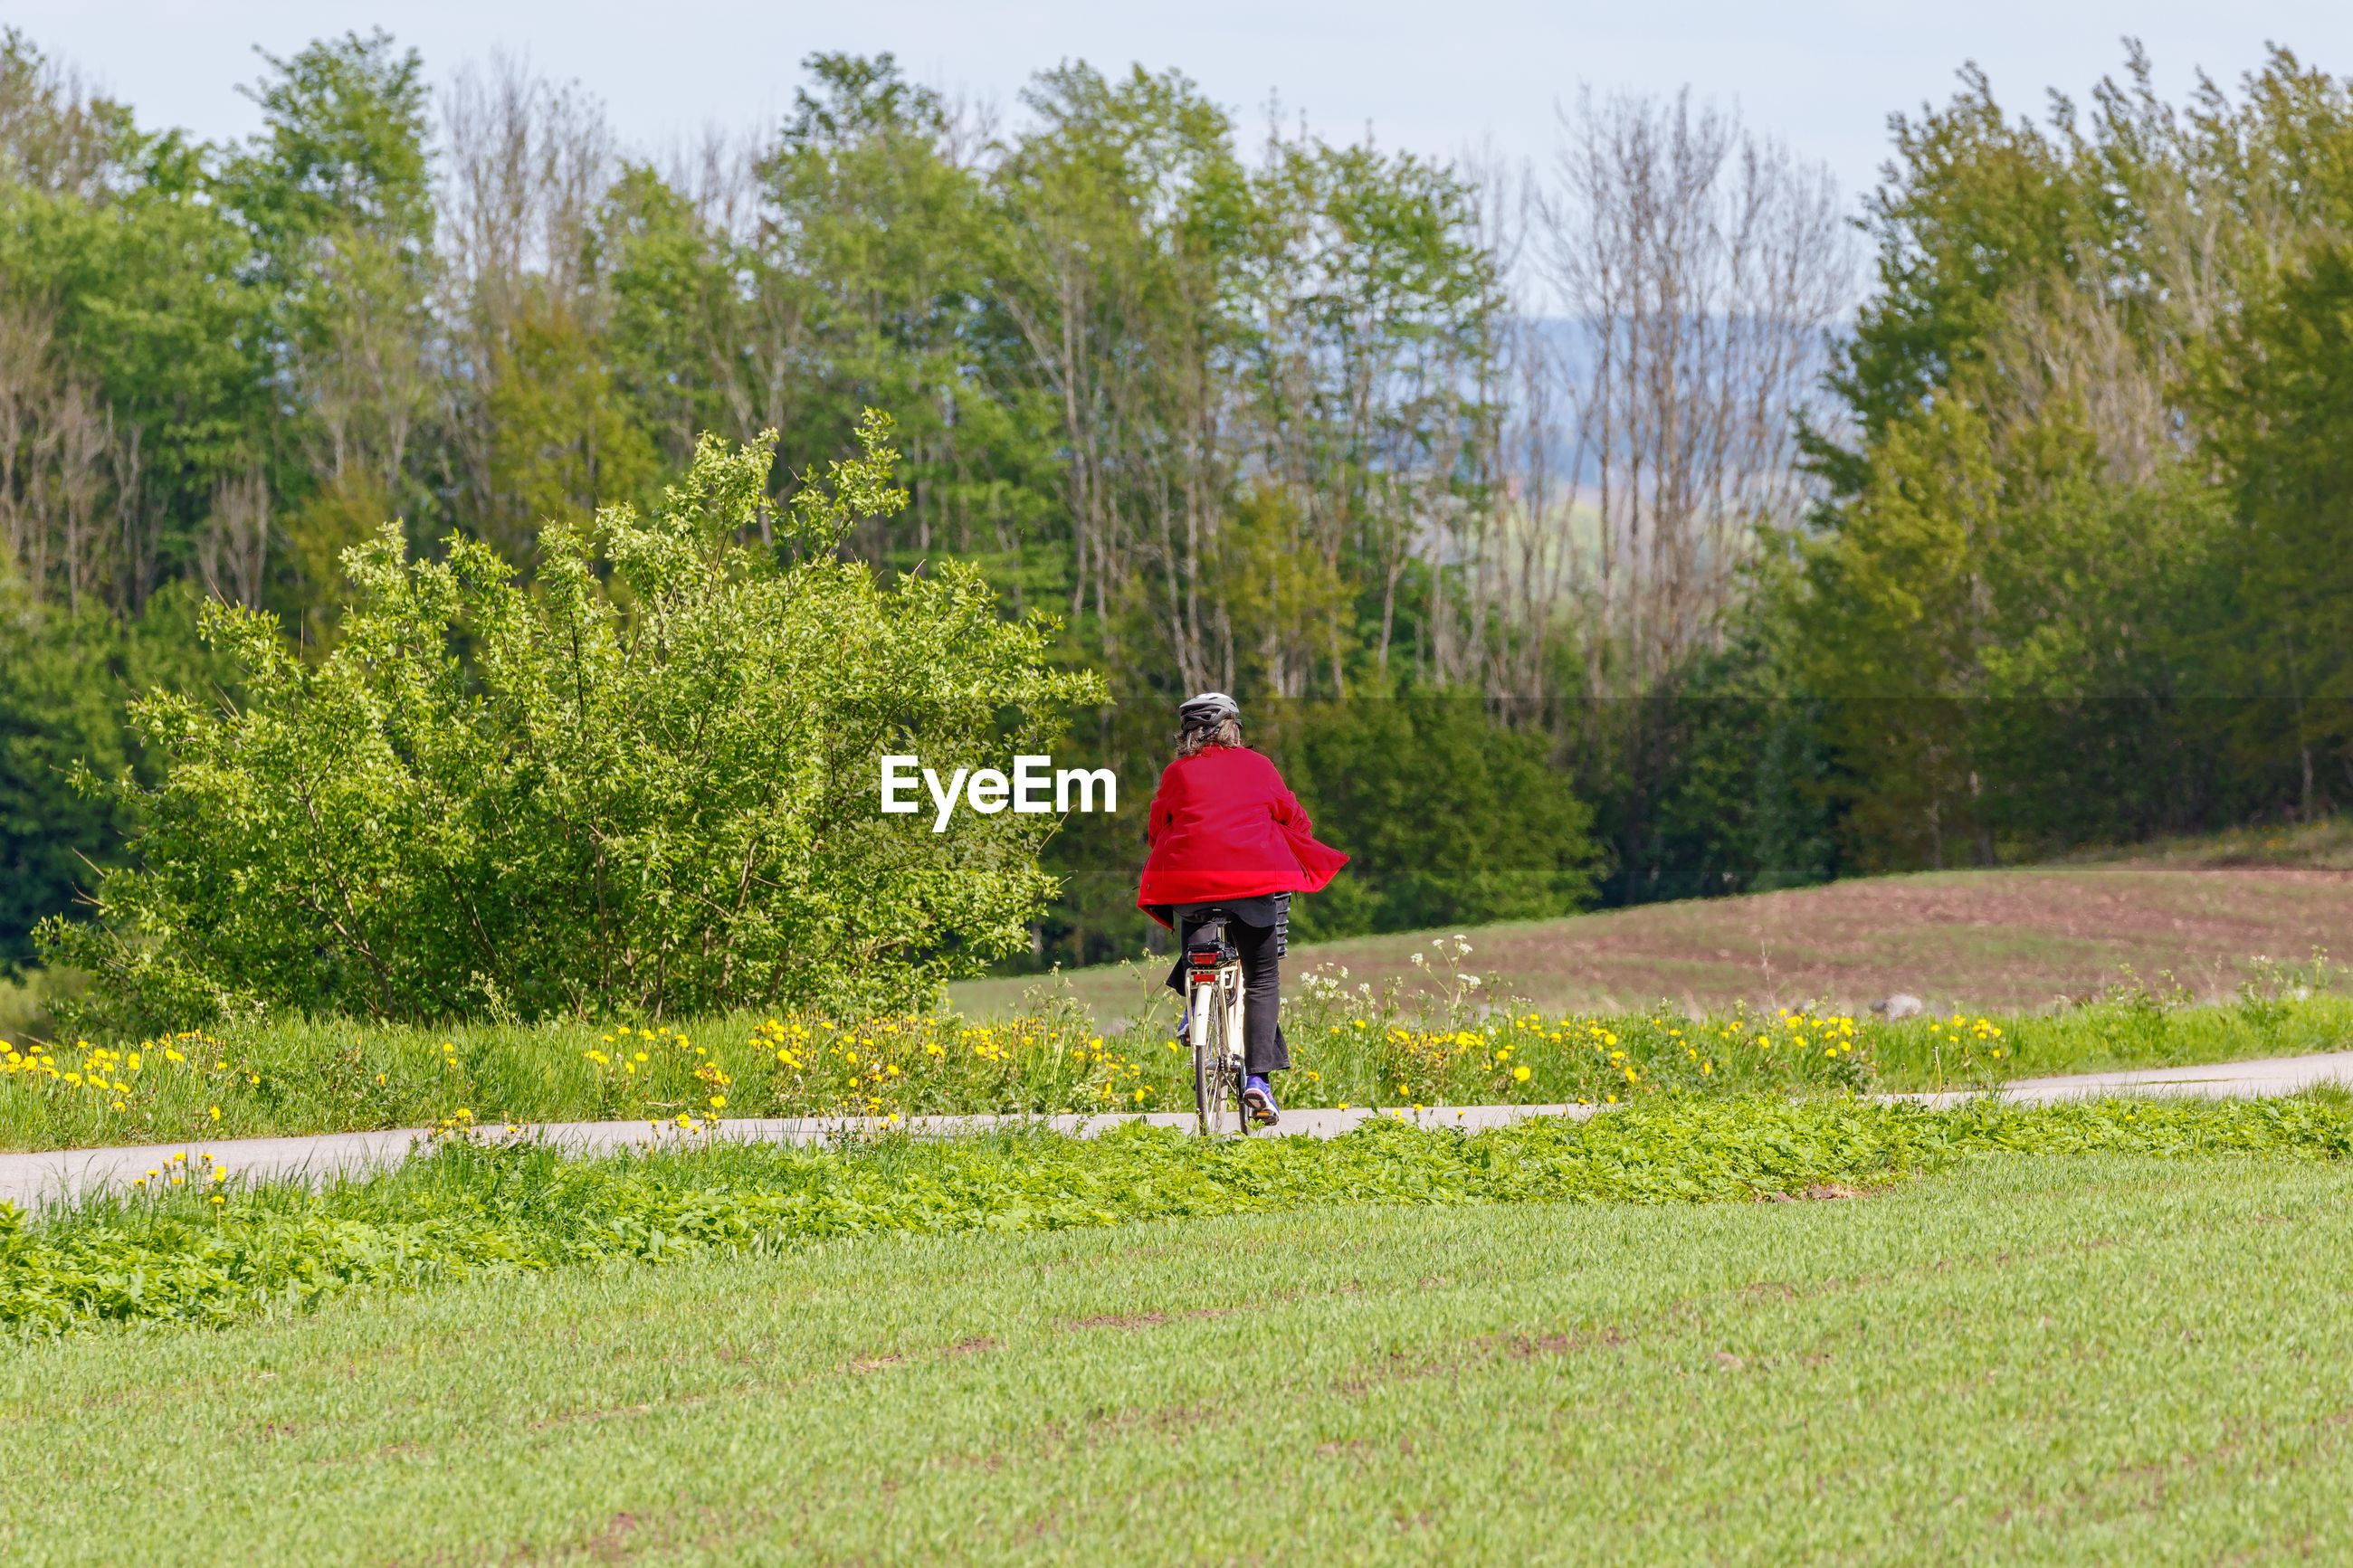 Rear view of woman riding bicycle on field